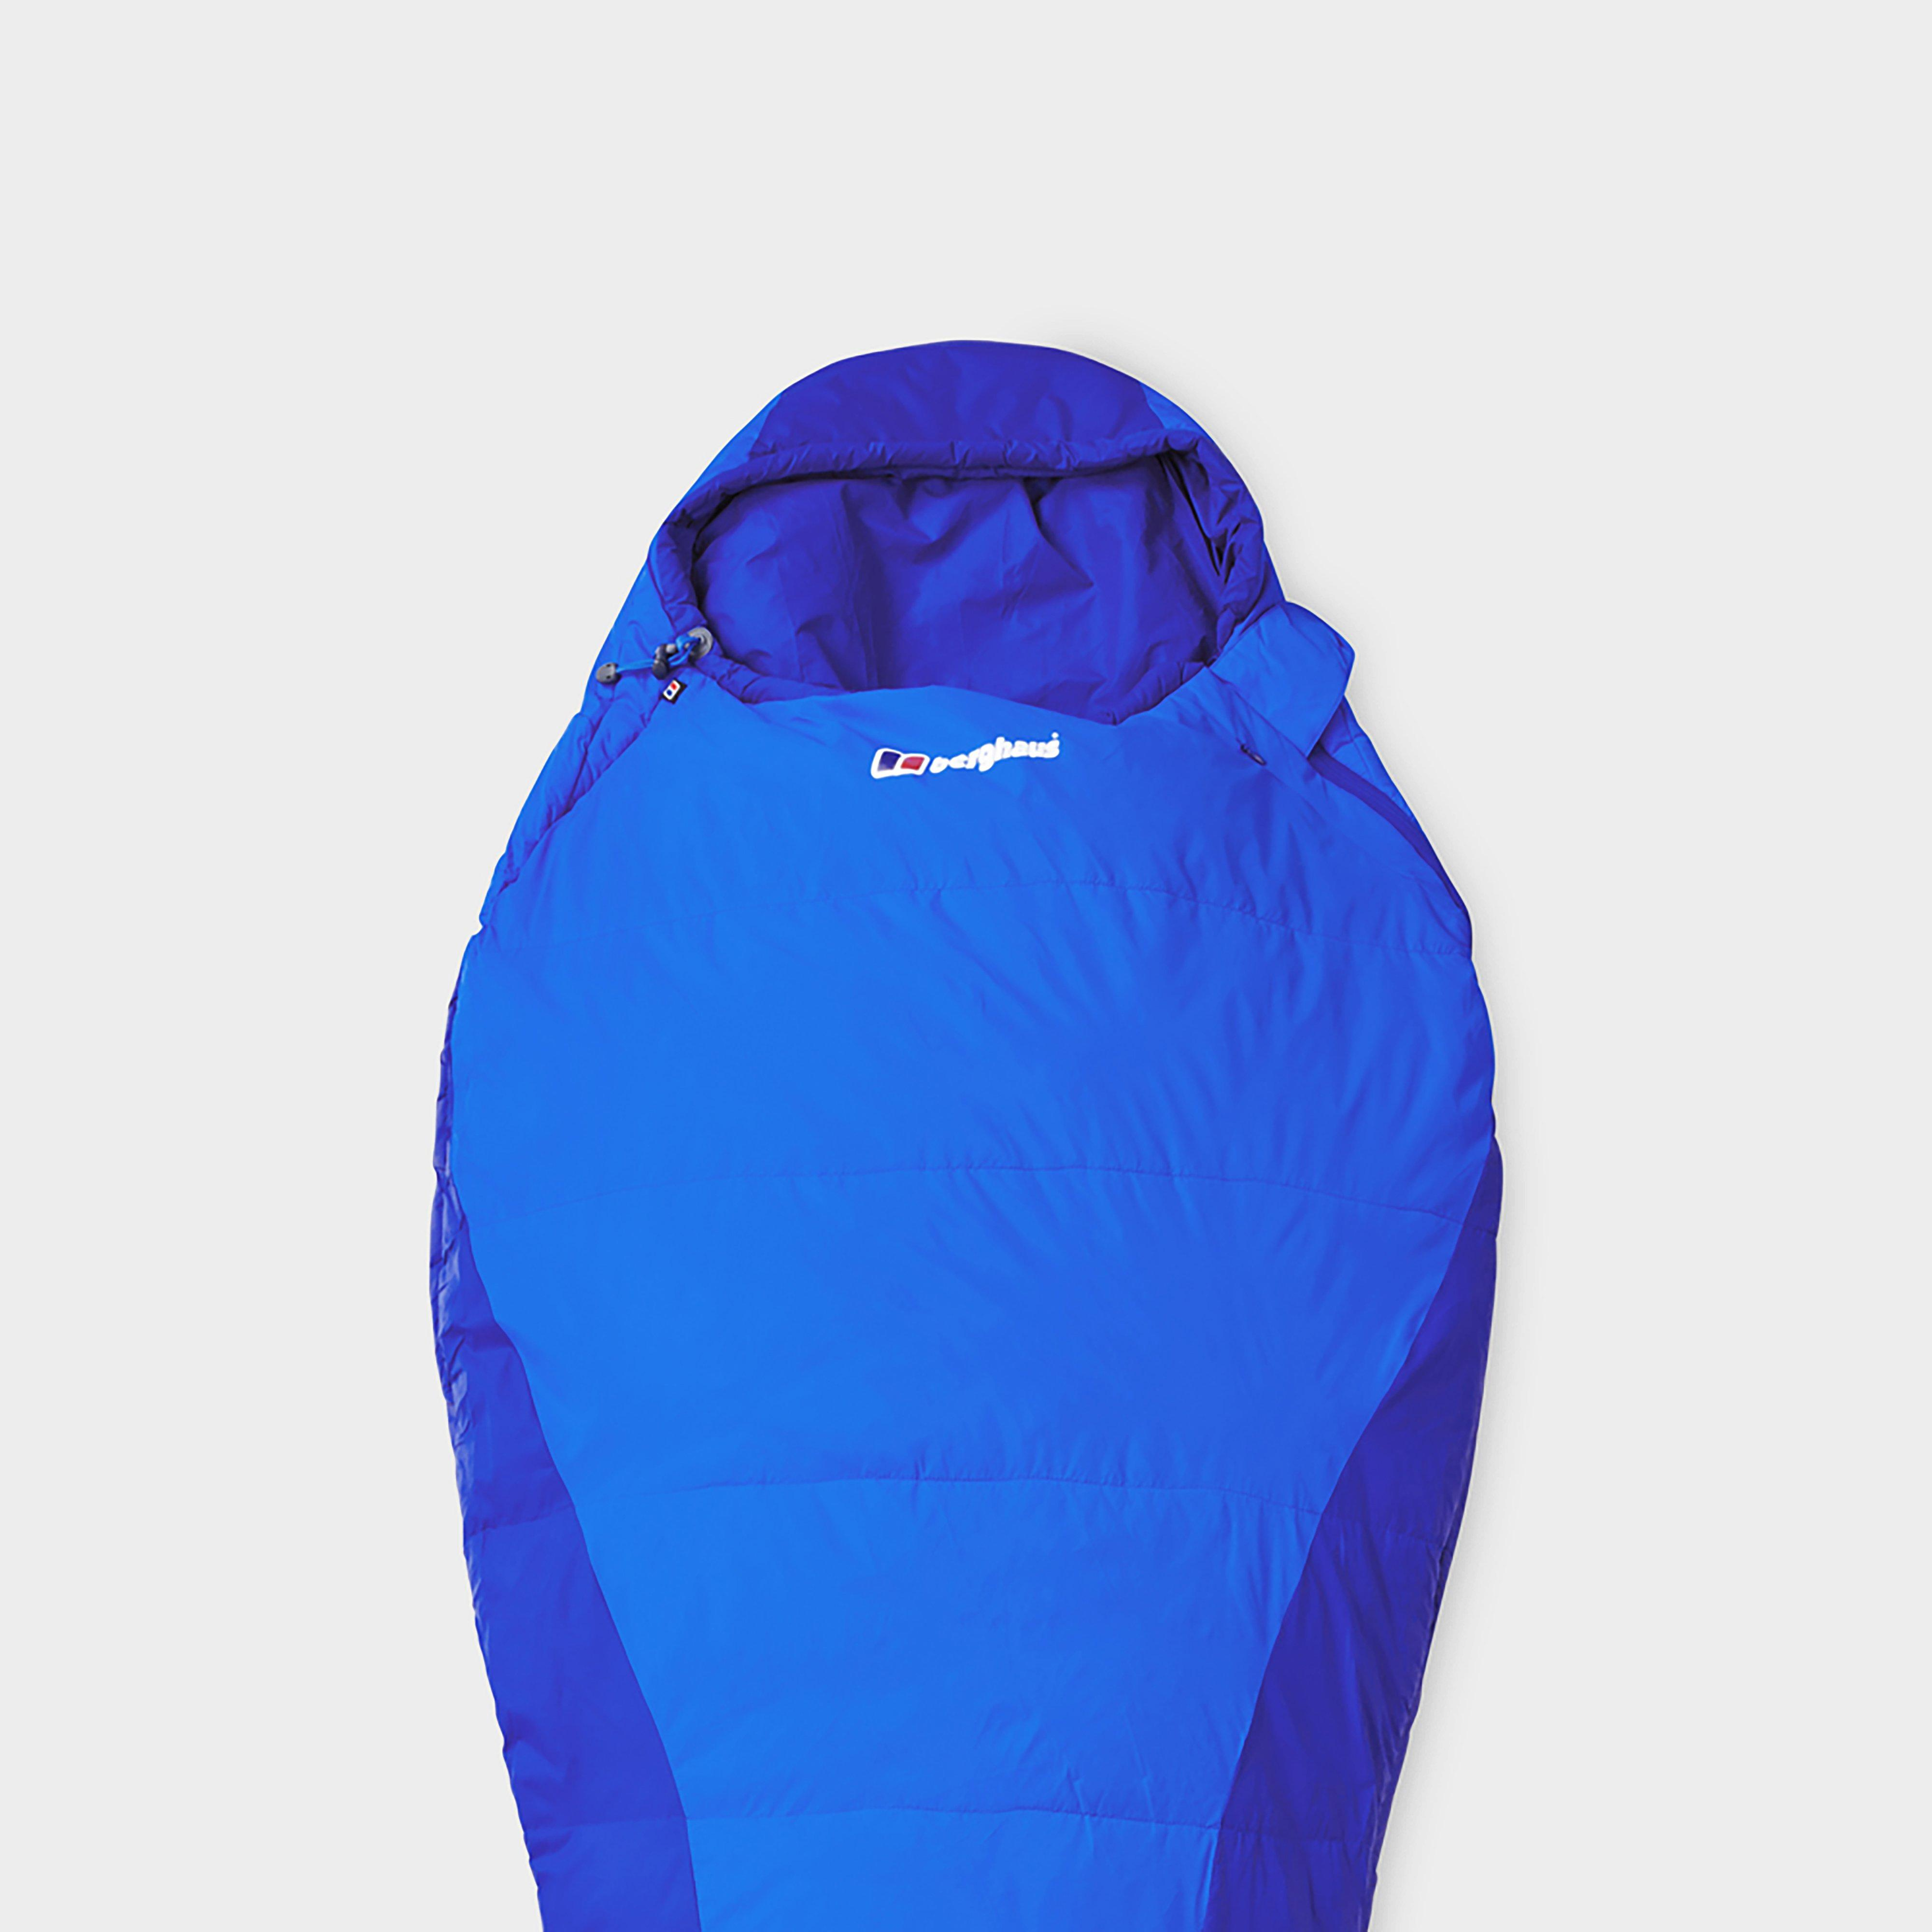 Berghaus Intrepid 700 Sleeping Bag - Blue, Blue